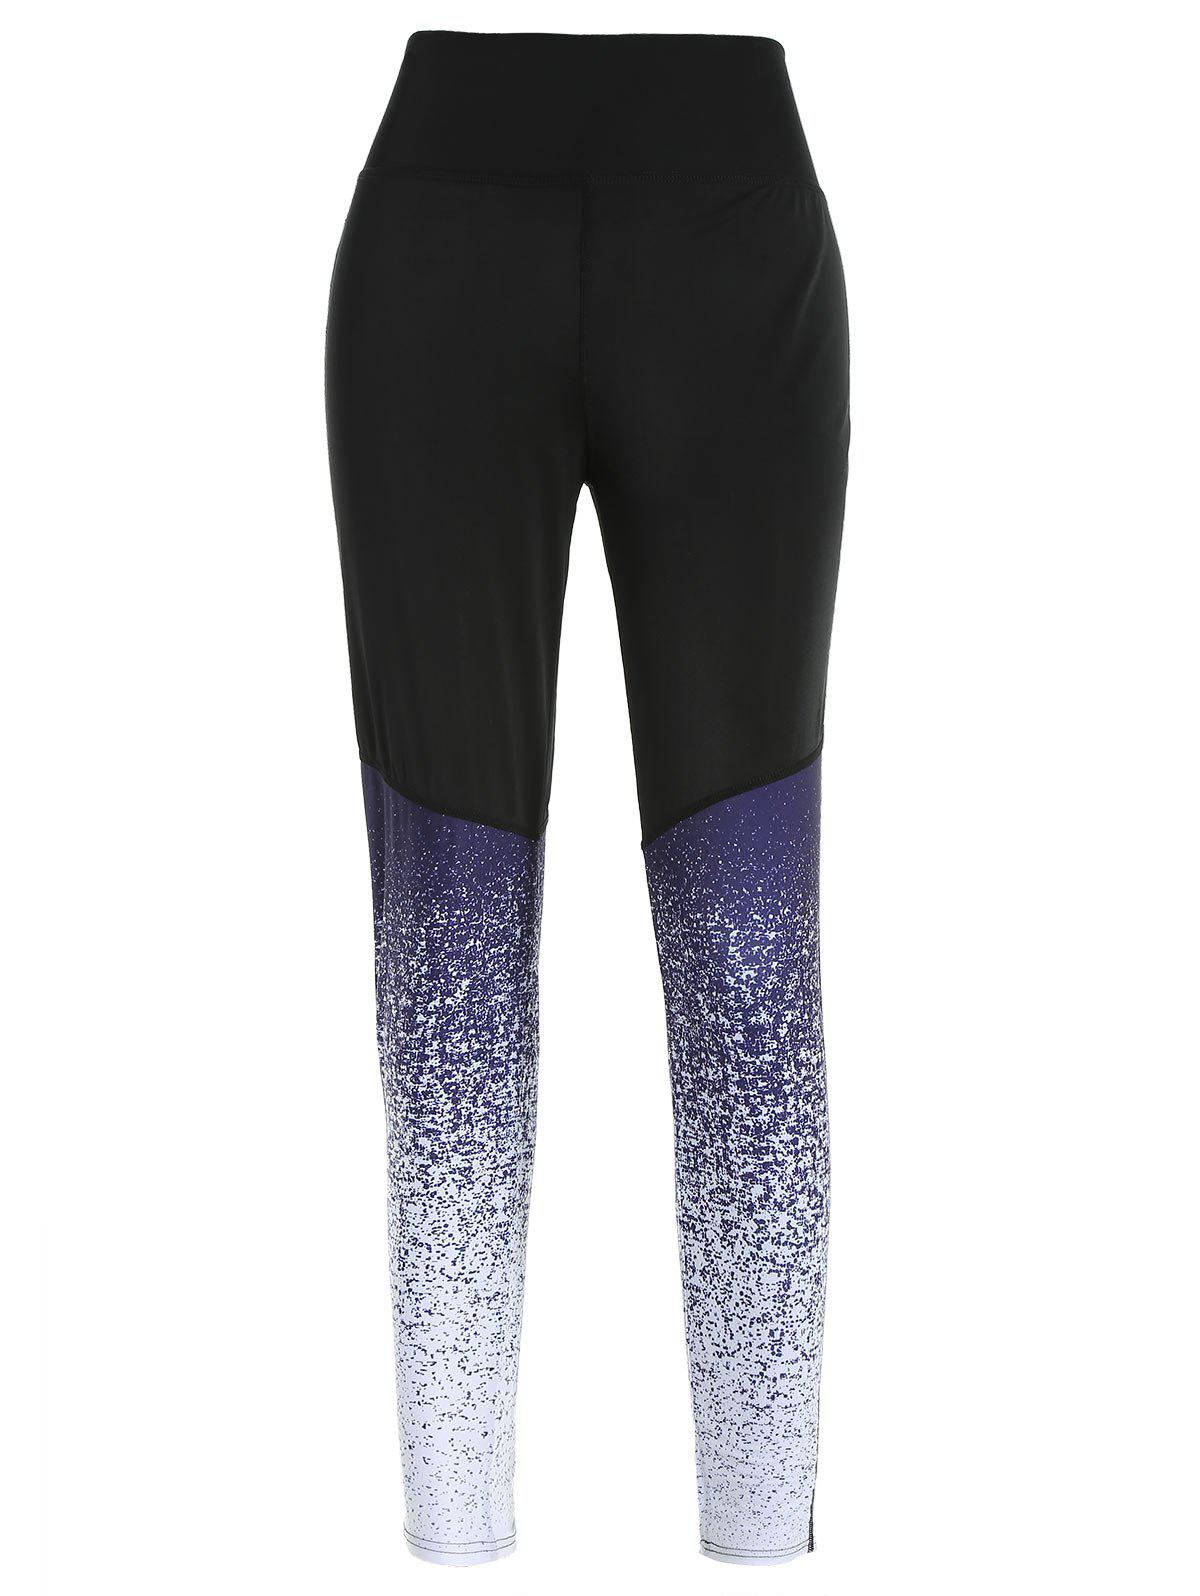 Ombre Color Sport Activewear Leggings 283275402